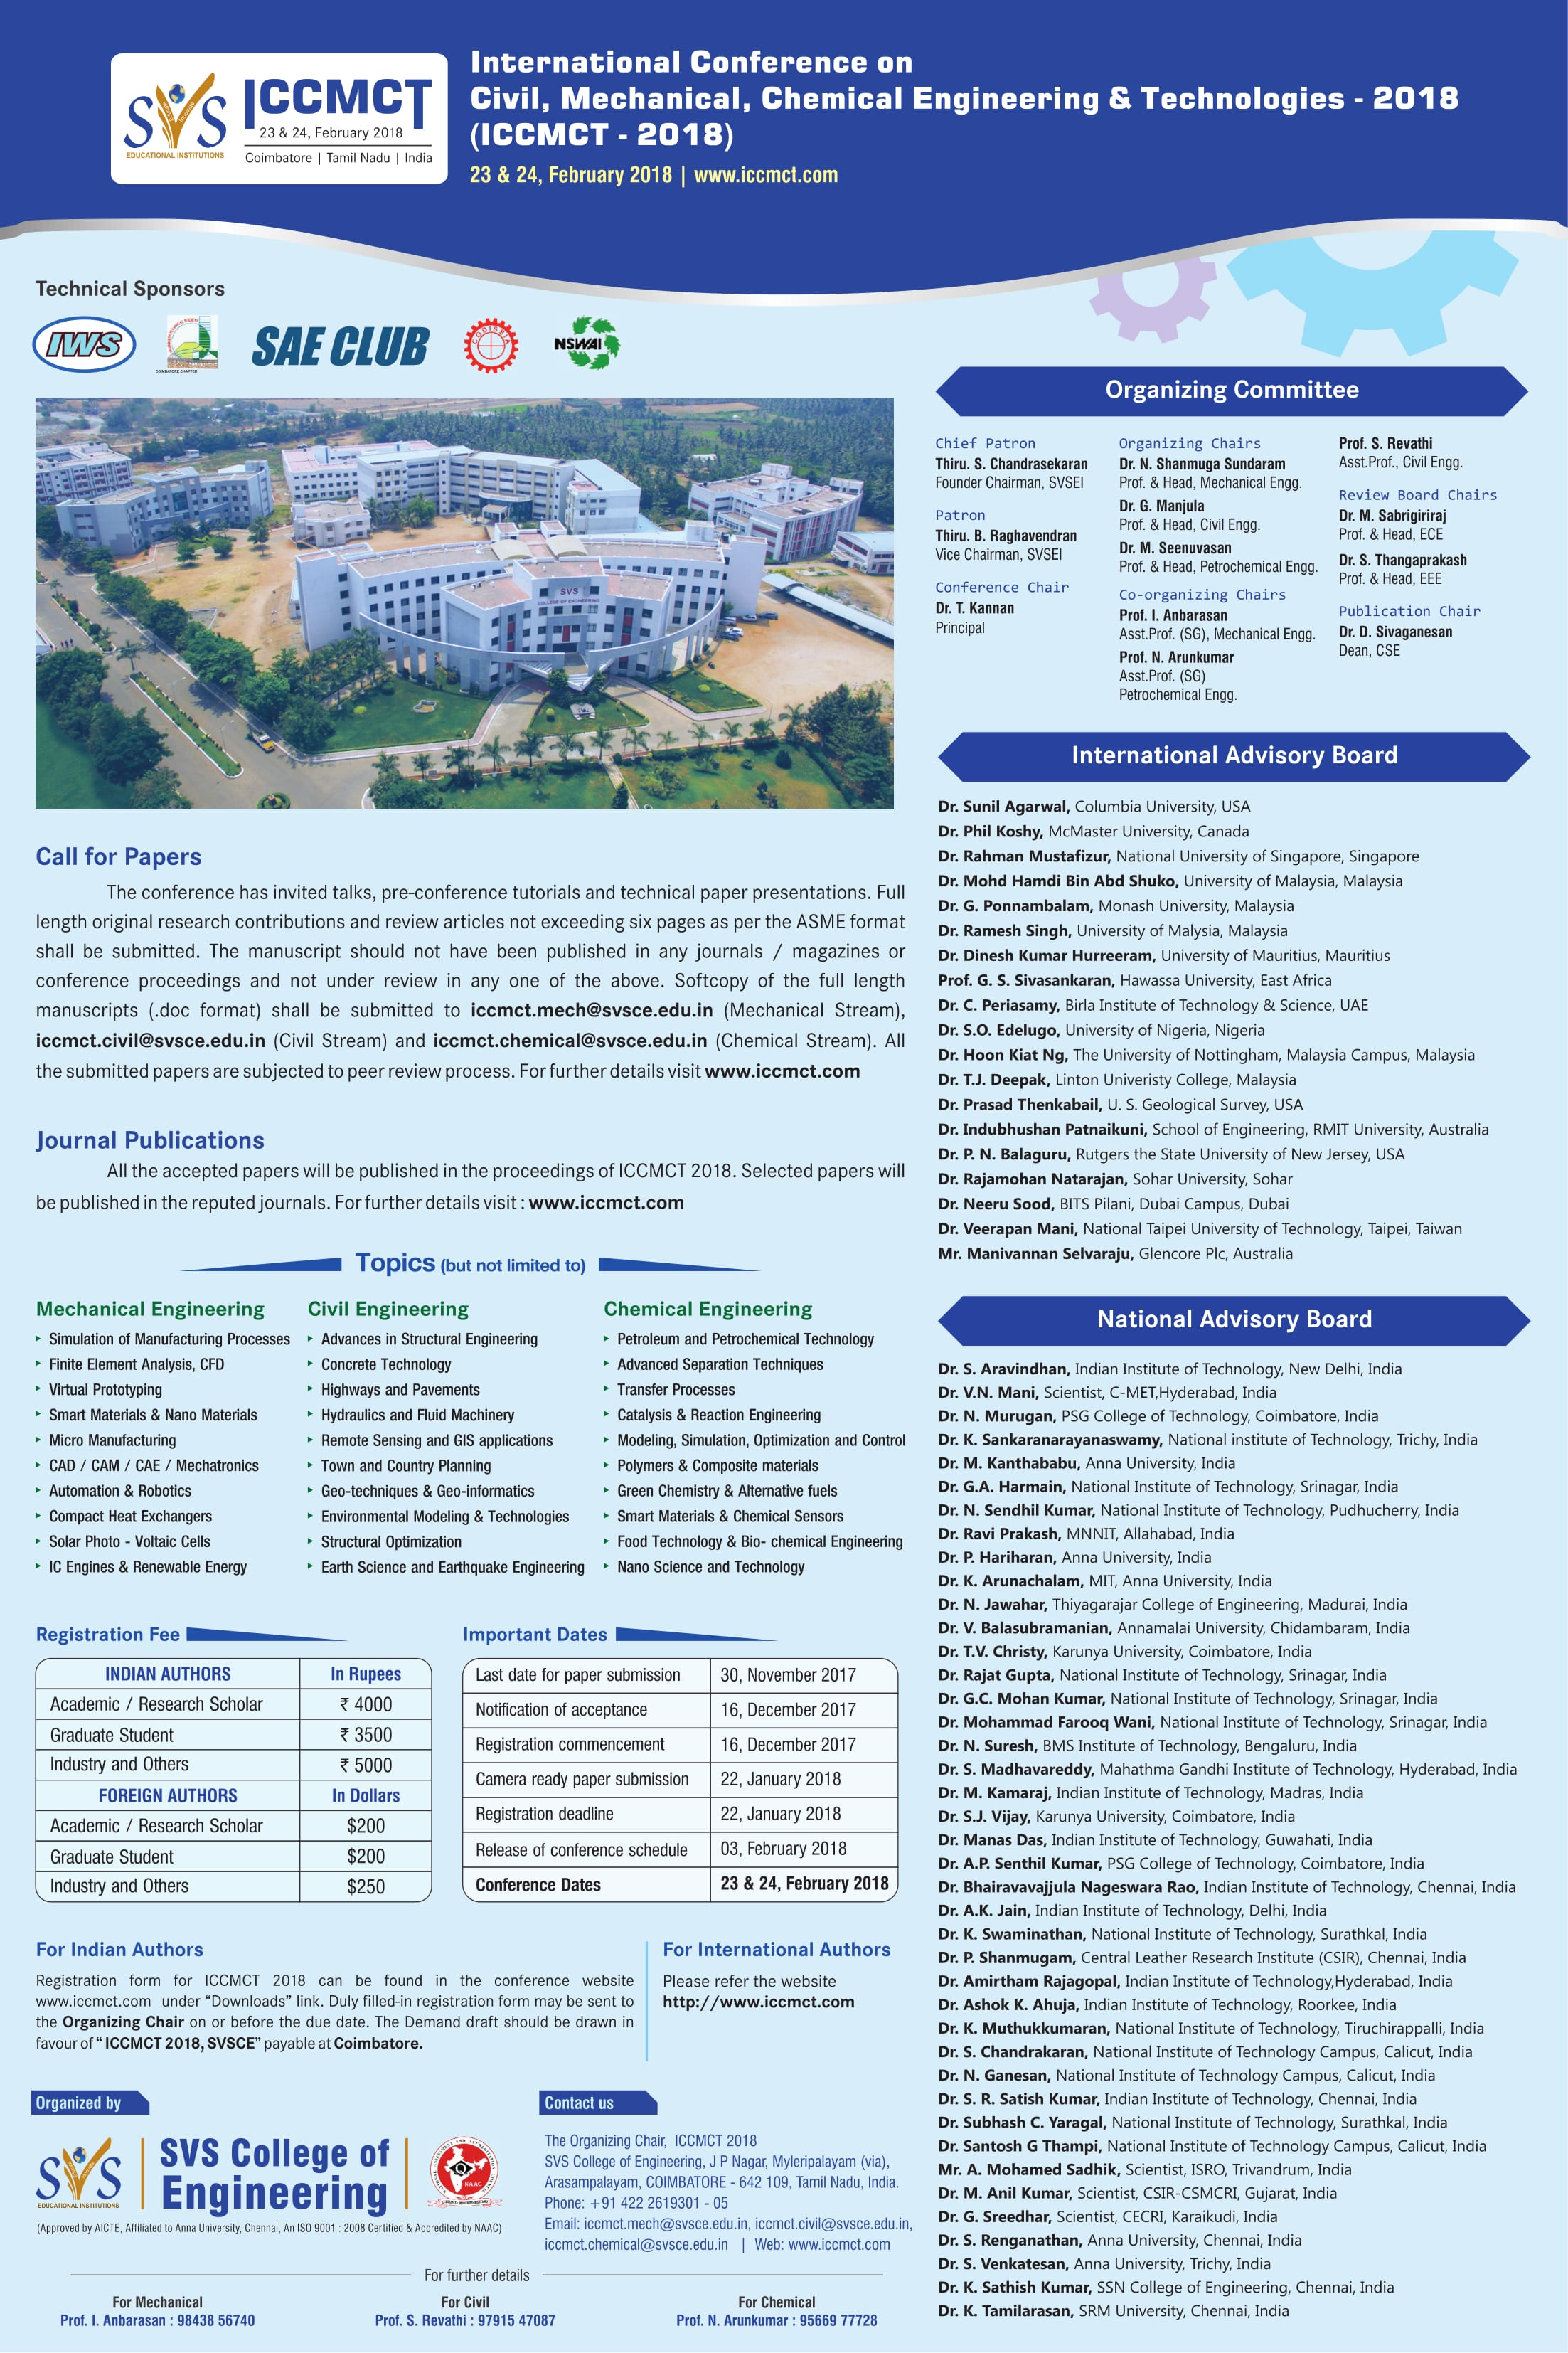 International Conference on Civil, Mechanical, Chemical Engineering and Technologies ICCMCT 2018